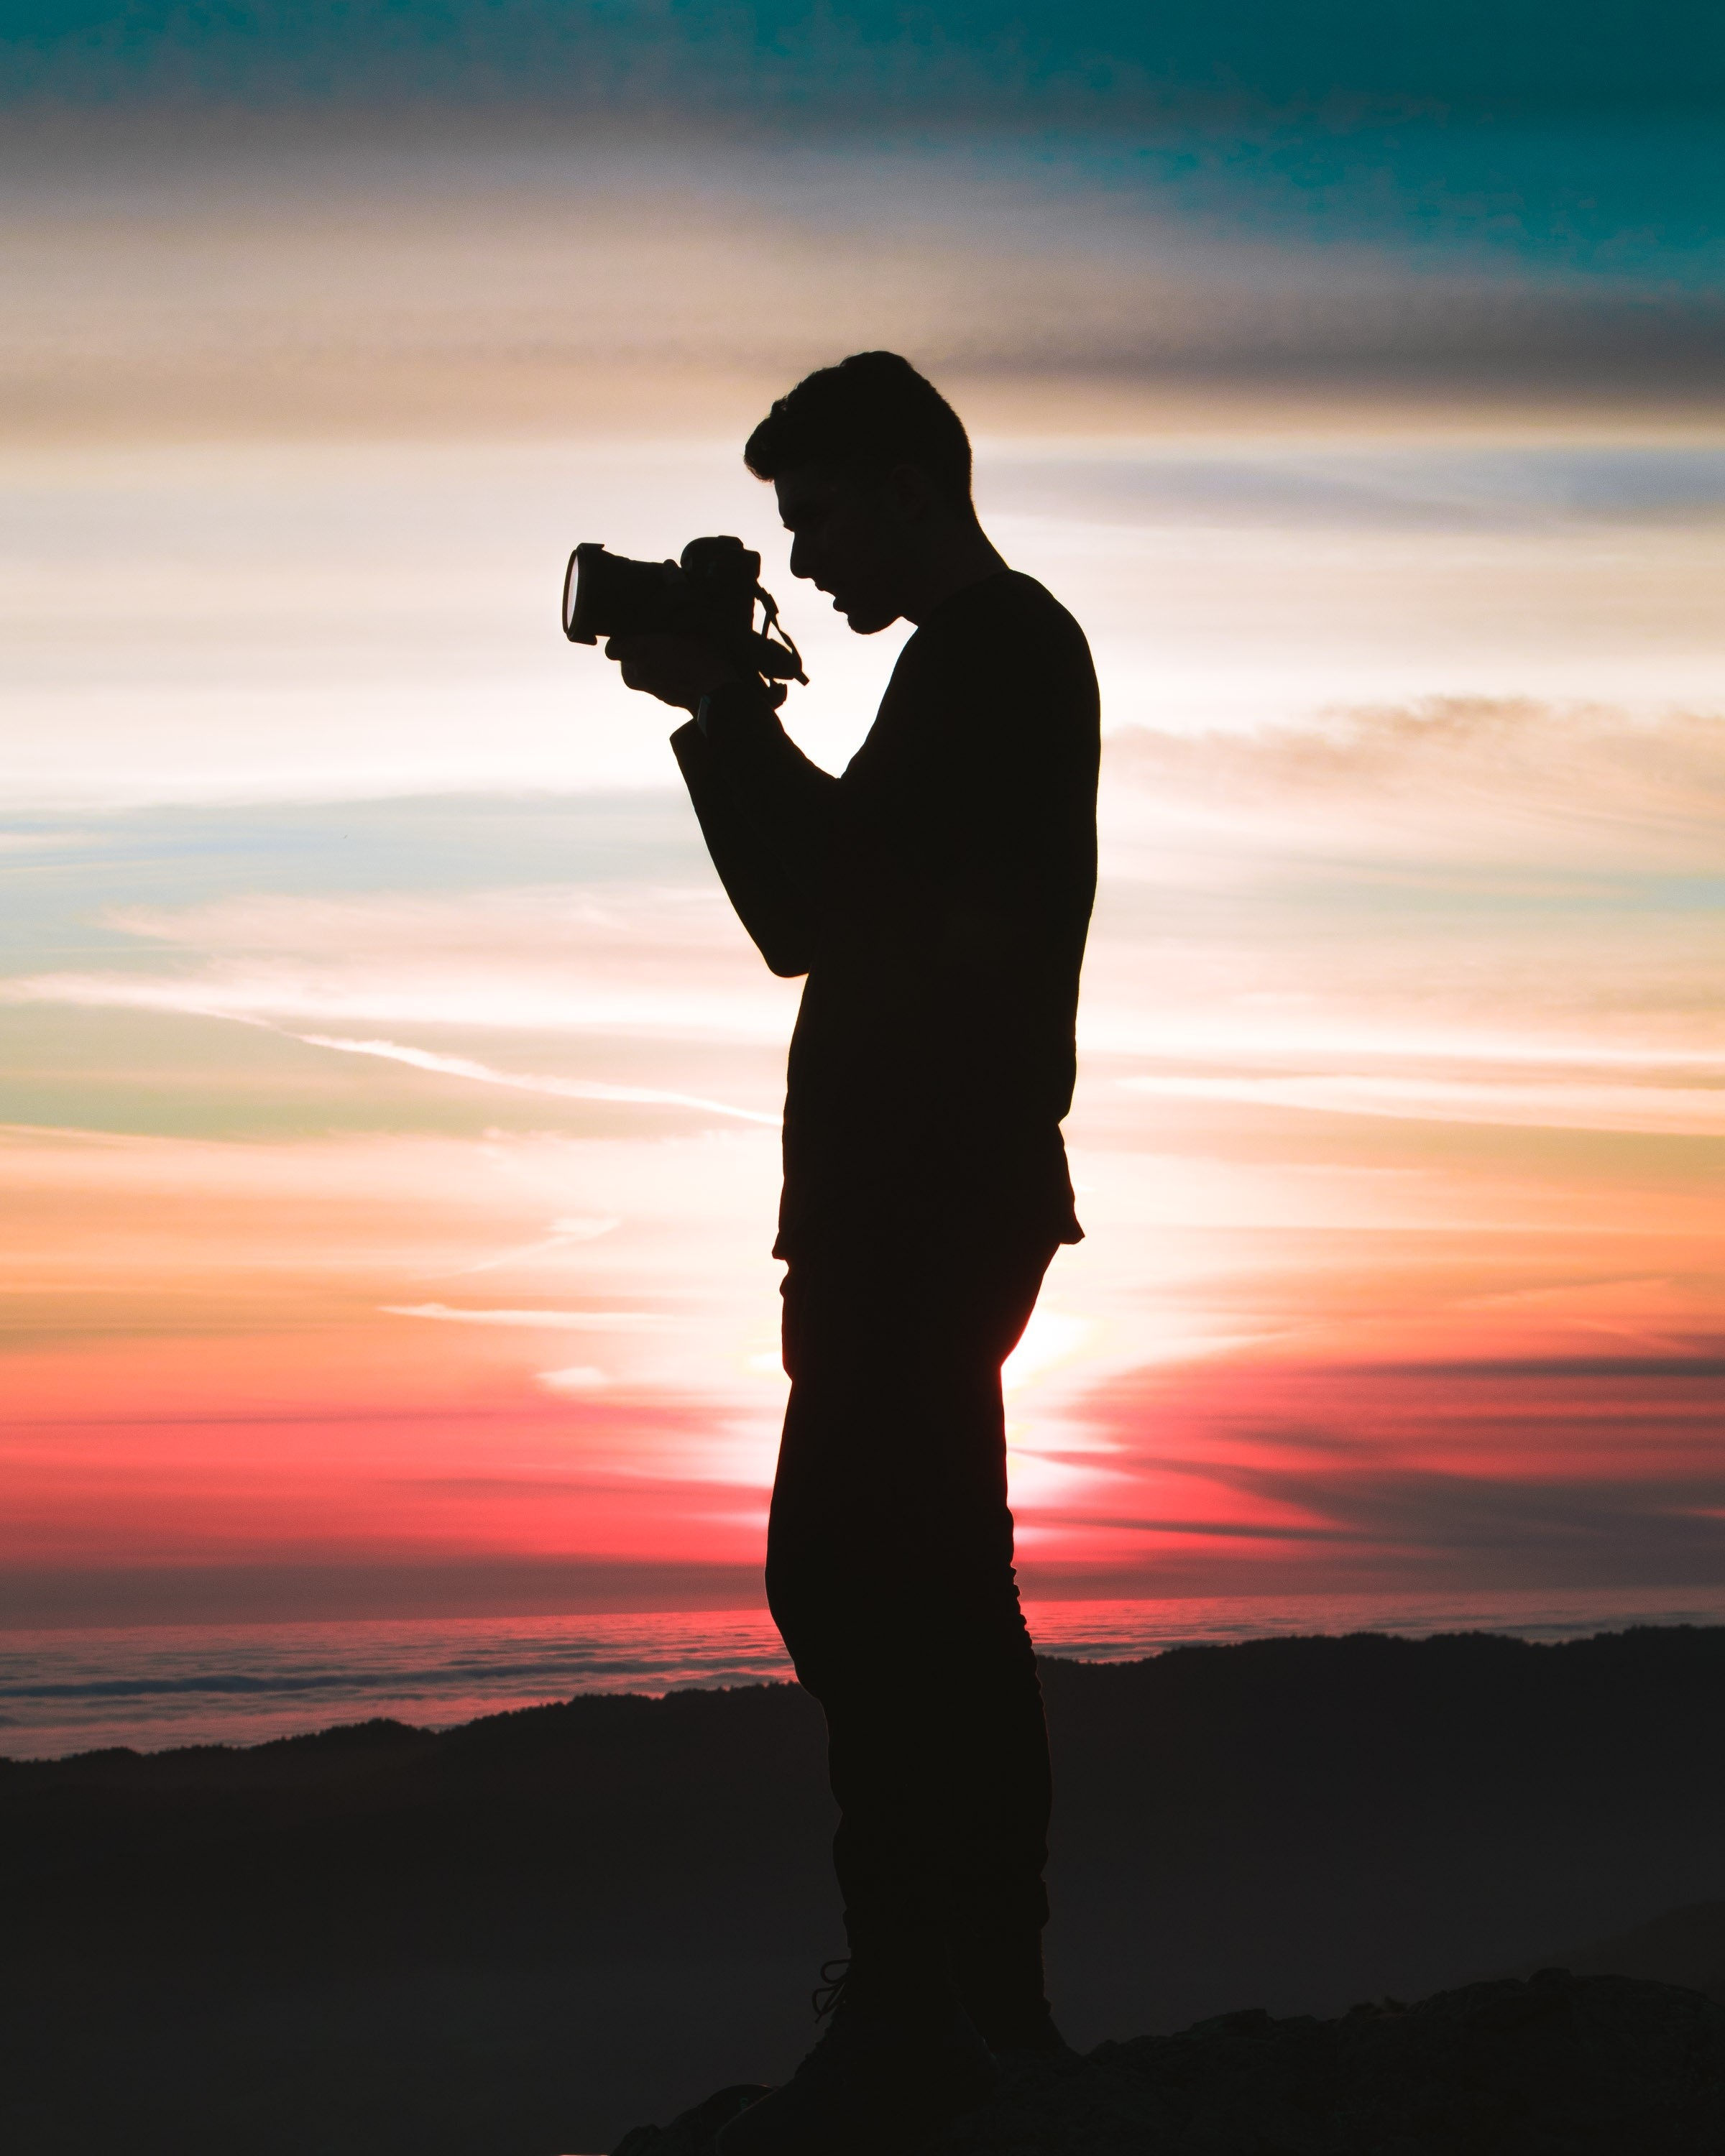 Silhouette of man with manual camera against a sunset